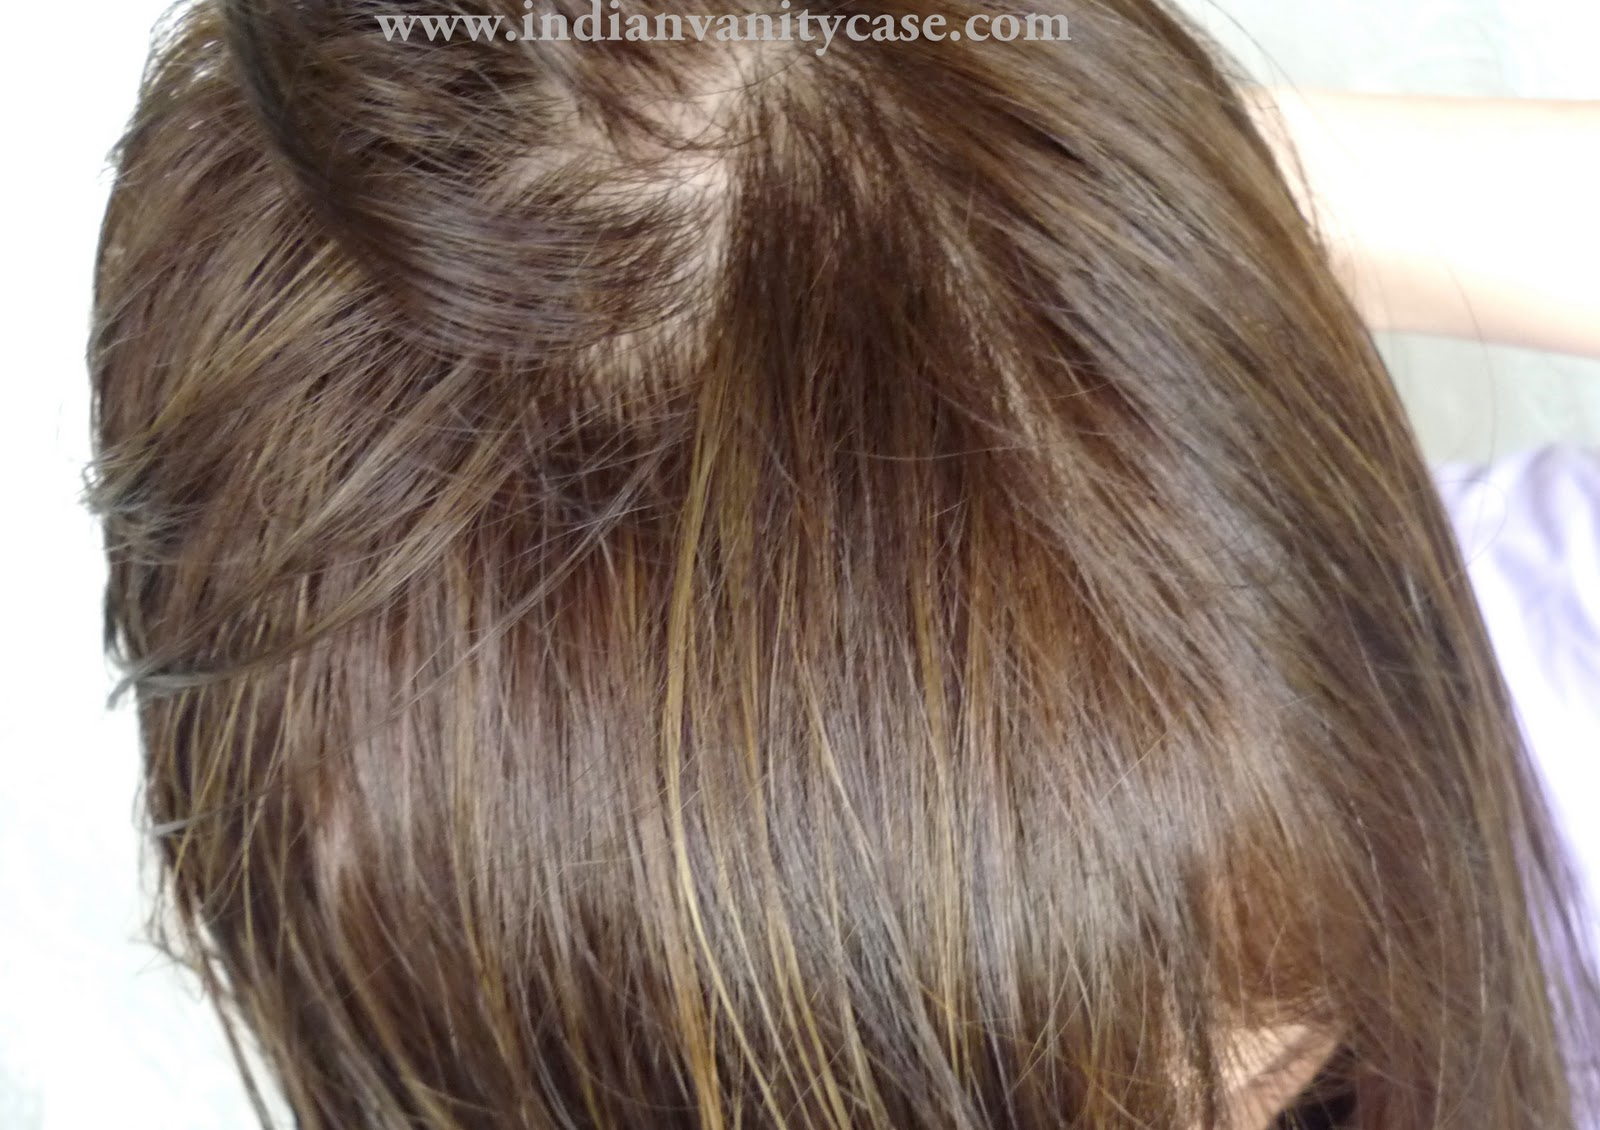 Loreal professional hair color chart 2016 best hair color loreal hair color pictures choice image coloring ideas geenschuldenfo Image collections